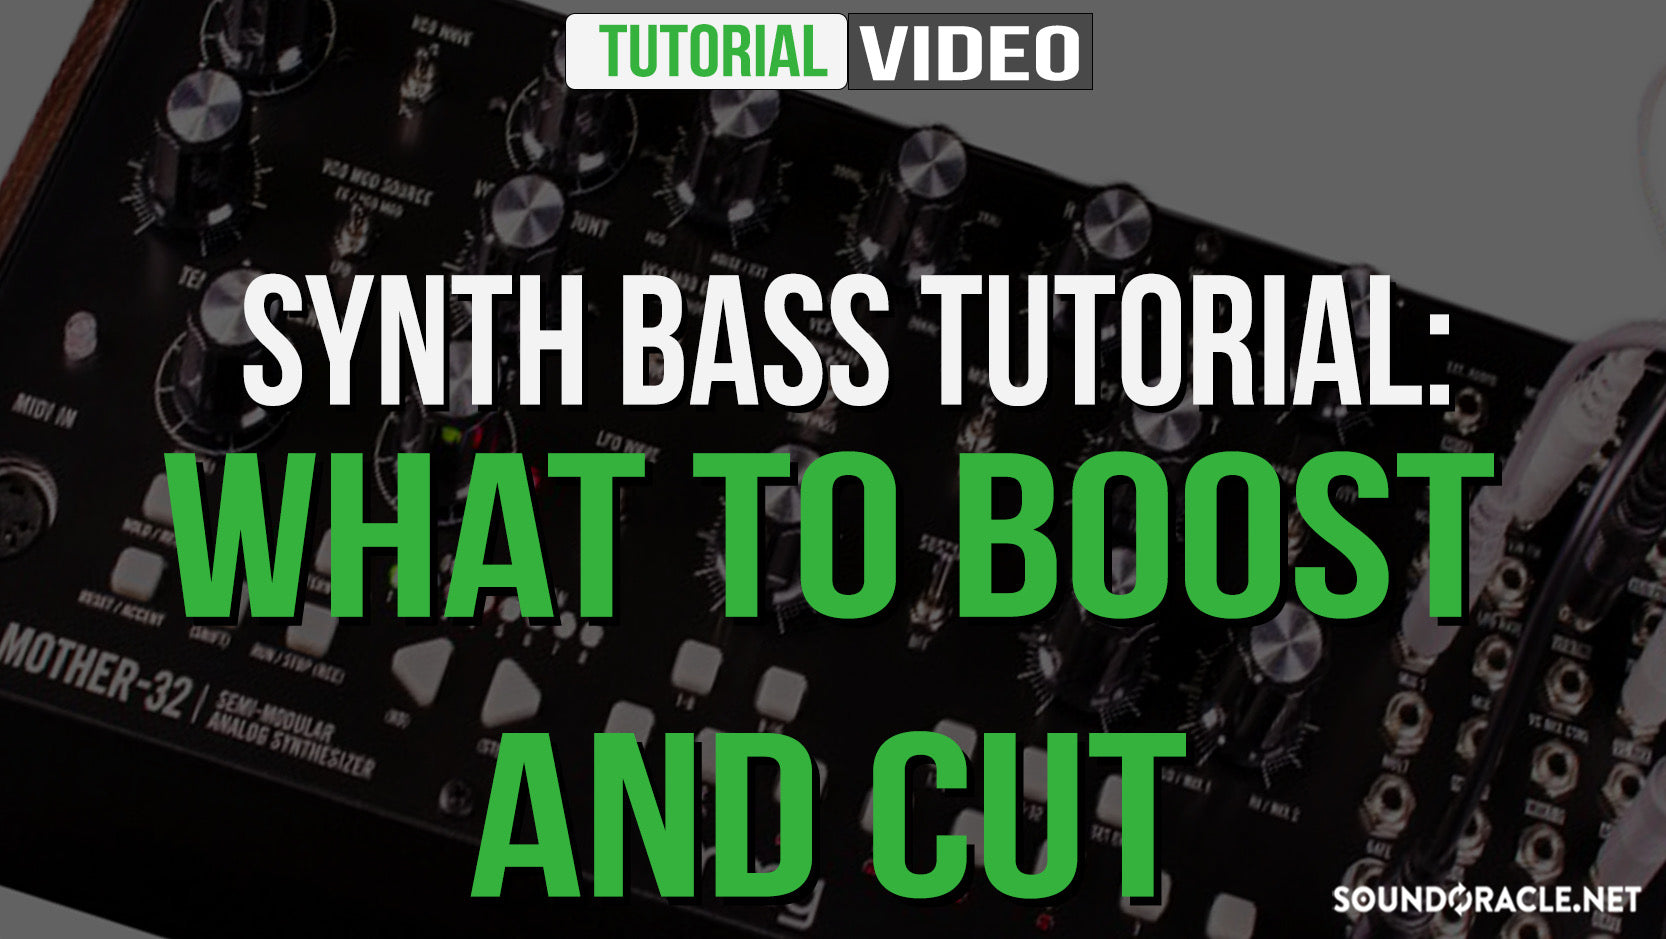 Synth Bass Tutorial: What To Boost And Cut